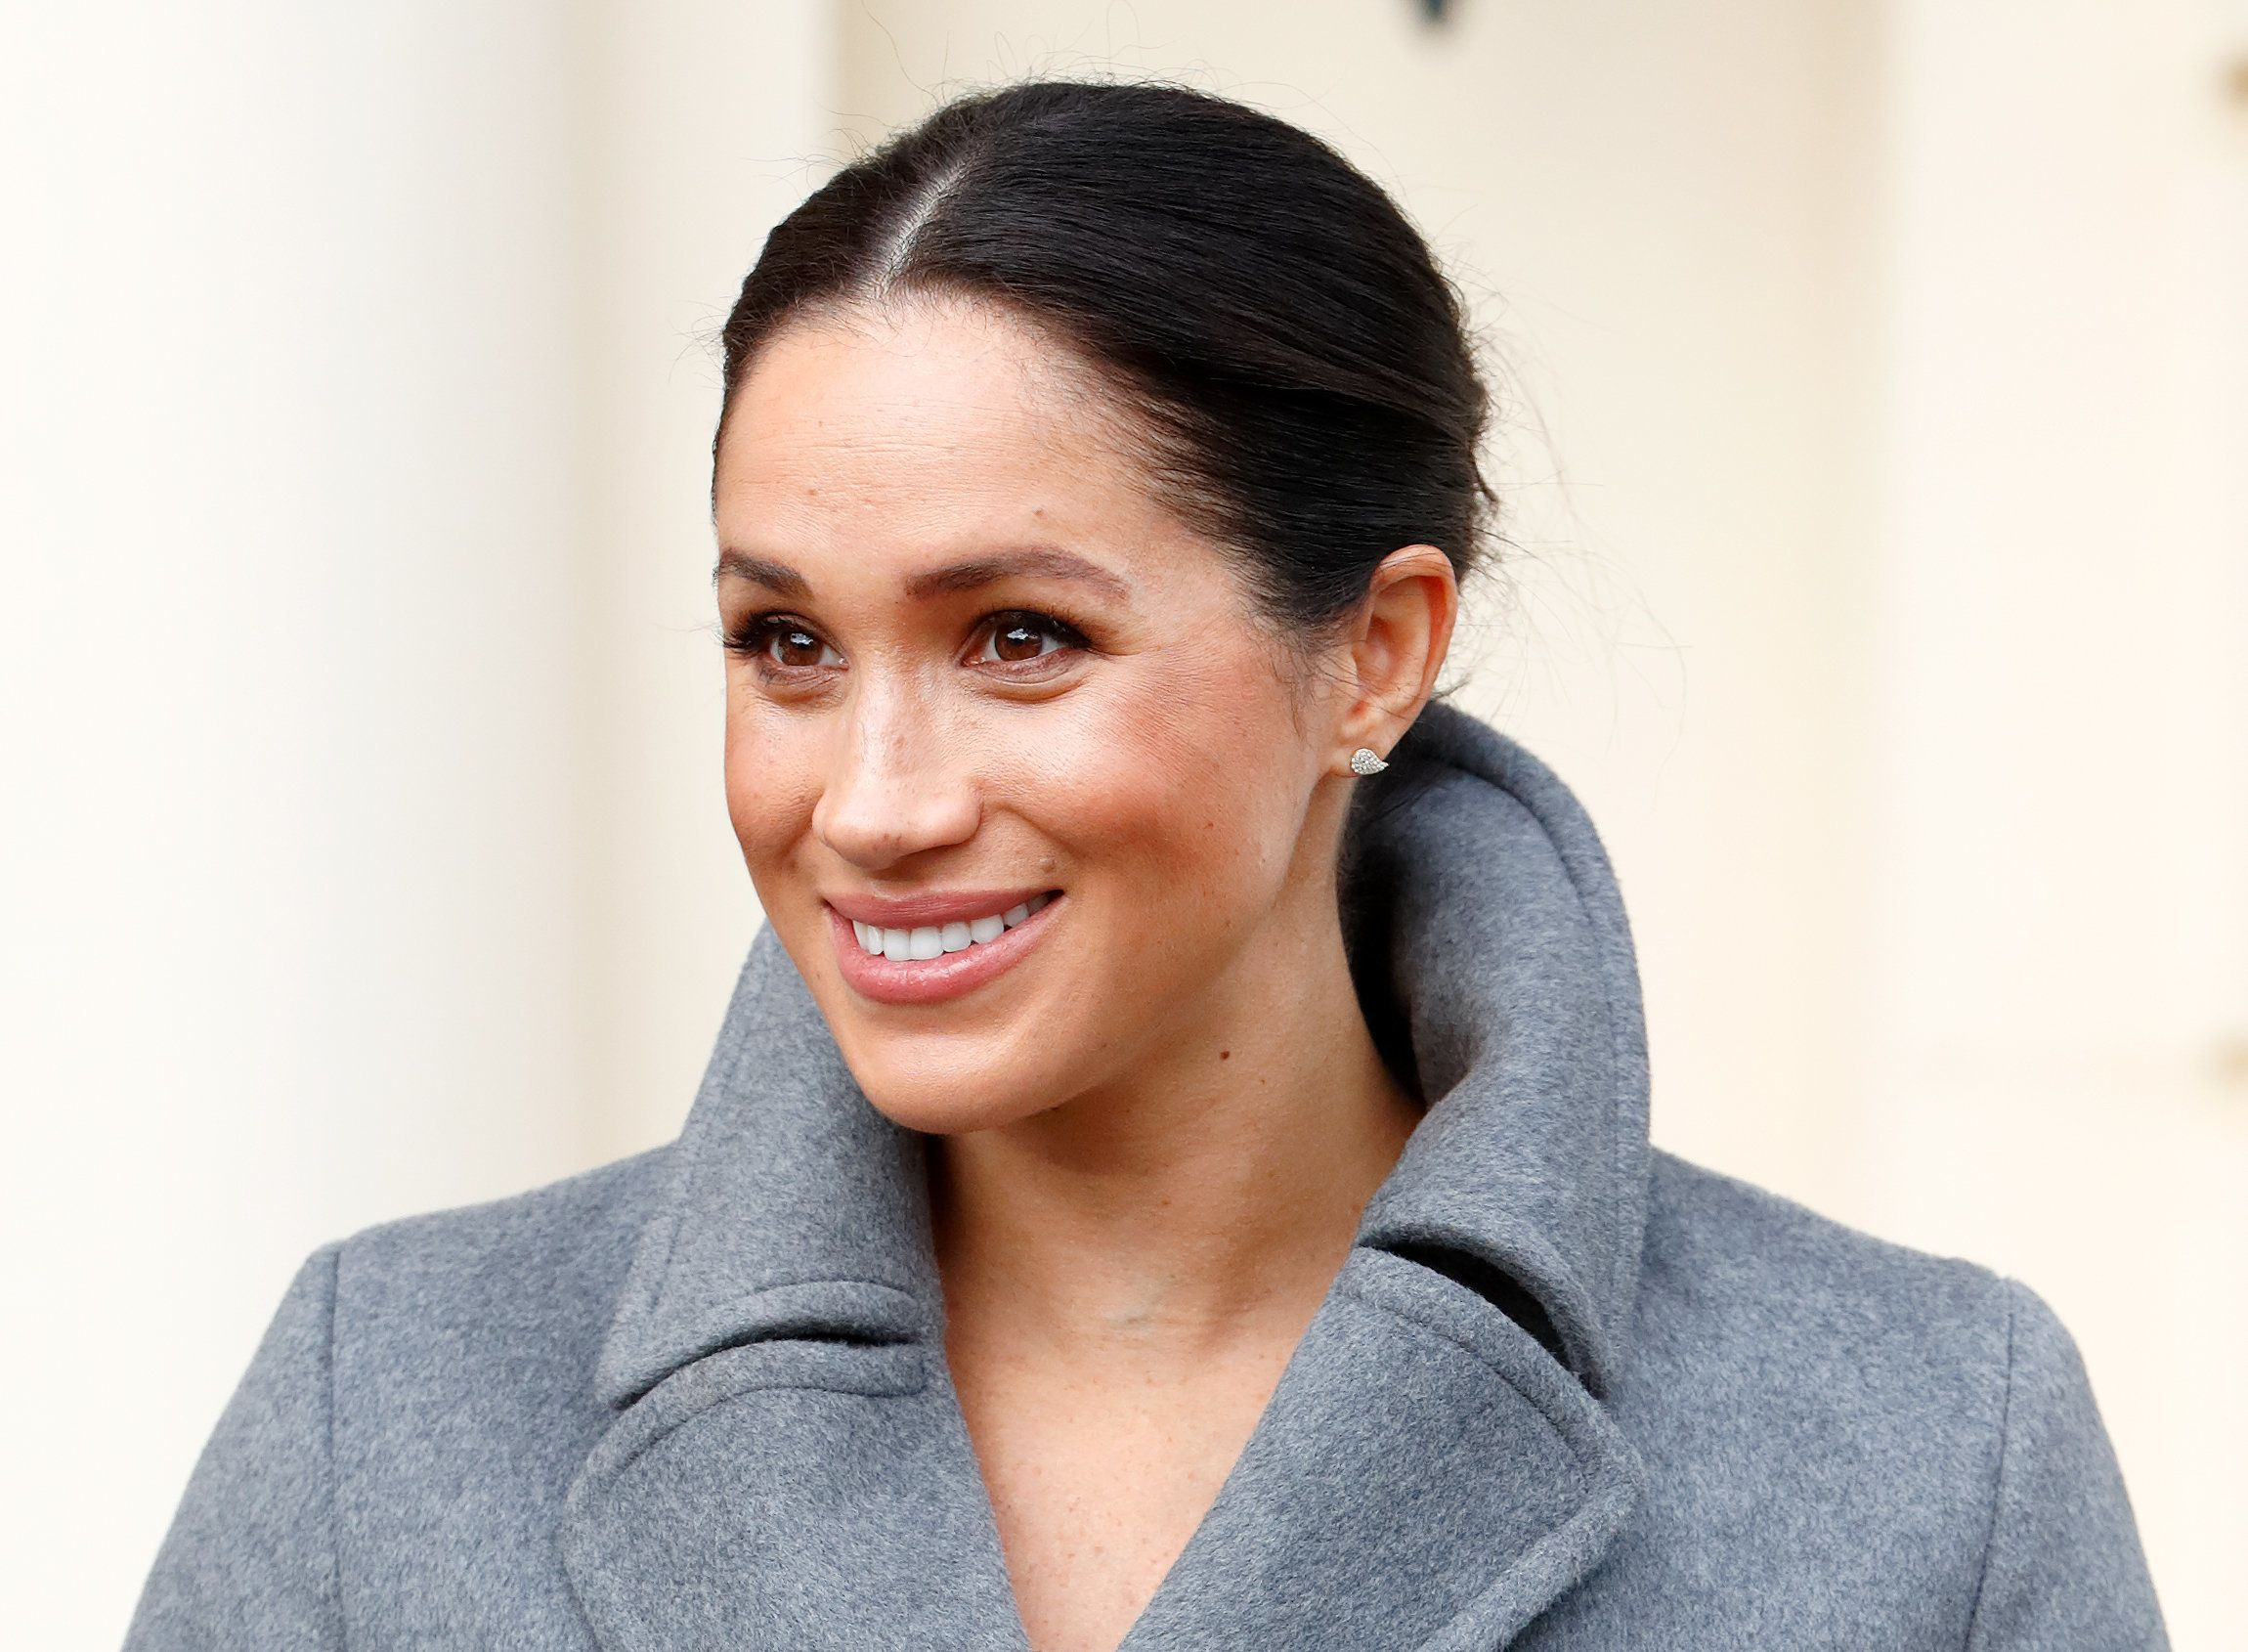 As an actress, an activist and now a royal, Meghan Markle knows a thing or two about